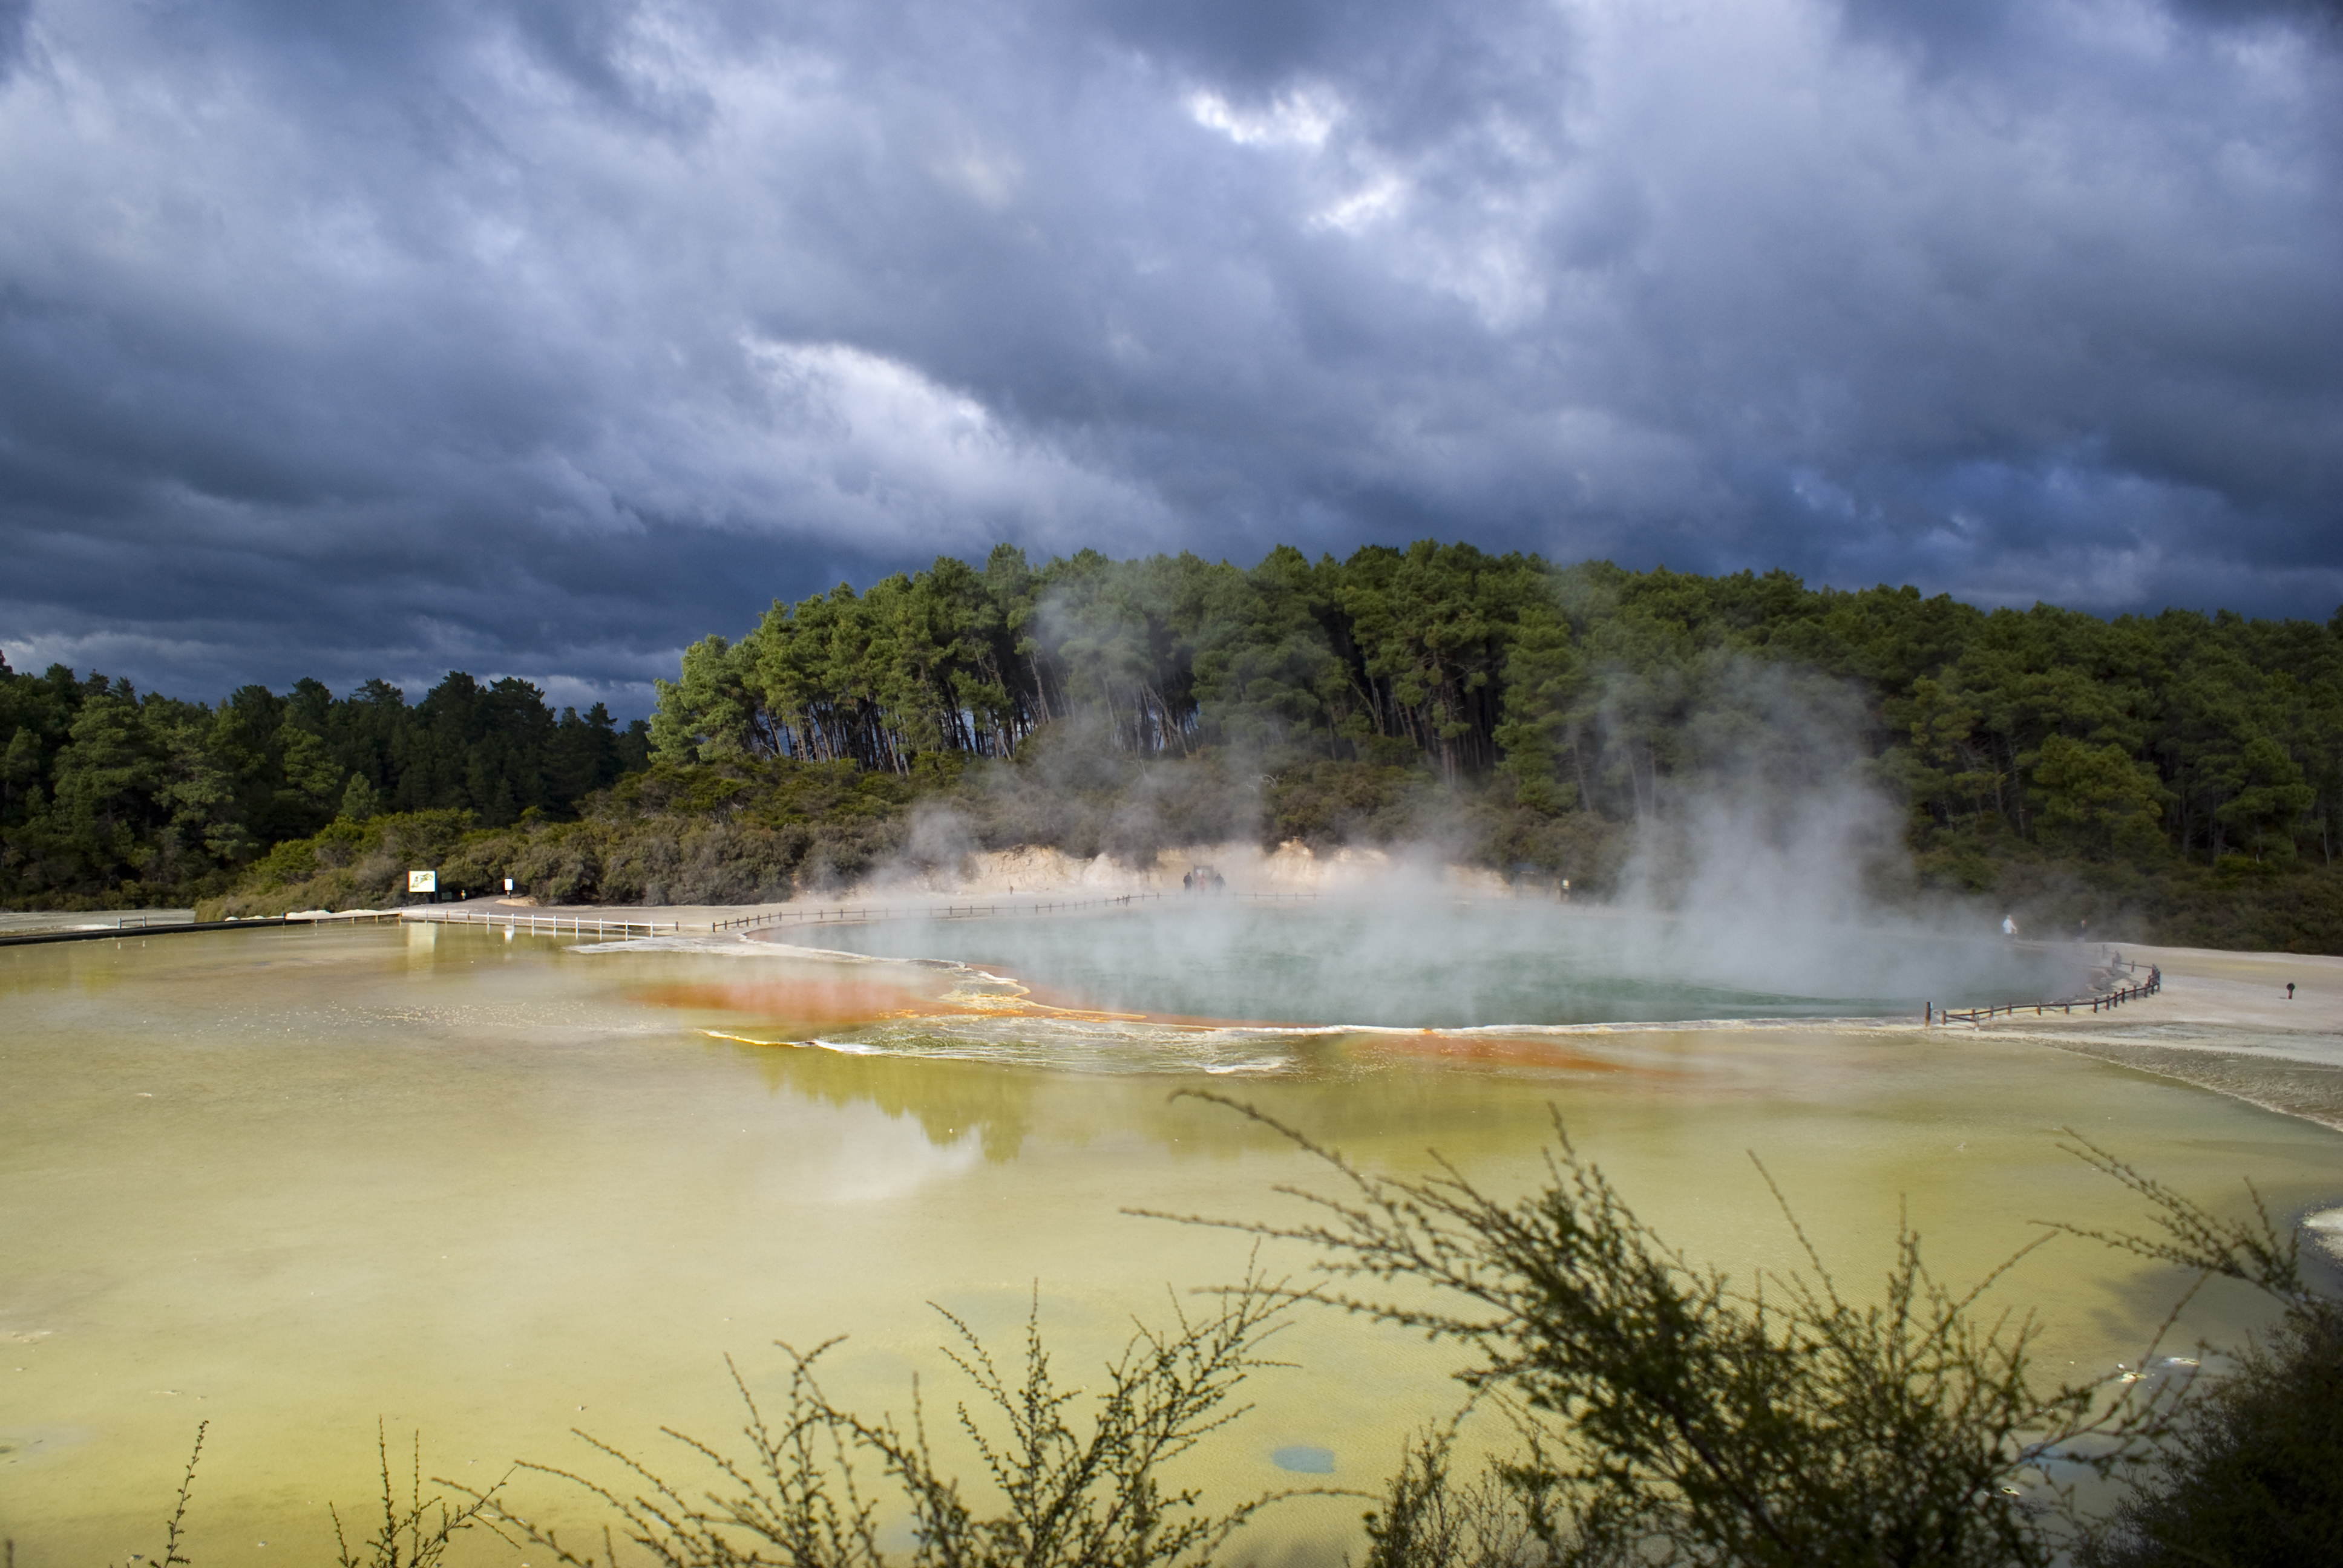 The Champagne Pool = New Zealand's Stunning Geothermal Wai-O-Tapu ...